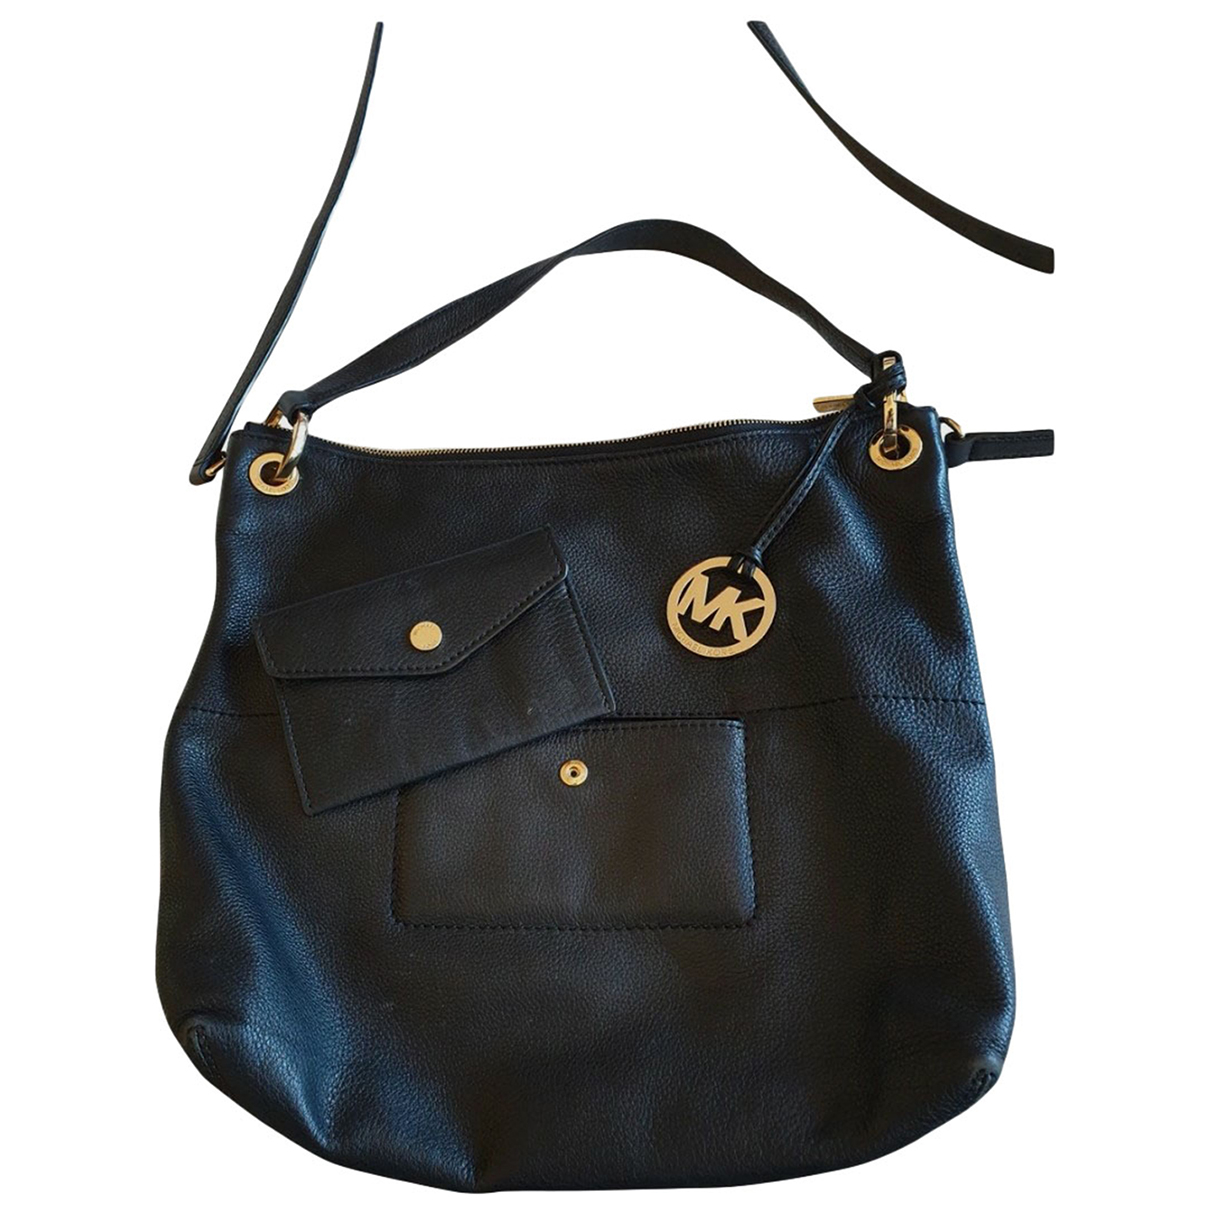 Michael Kors N Black Leather handbag for Women N